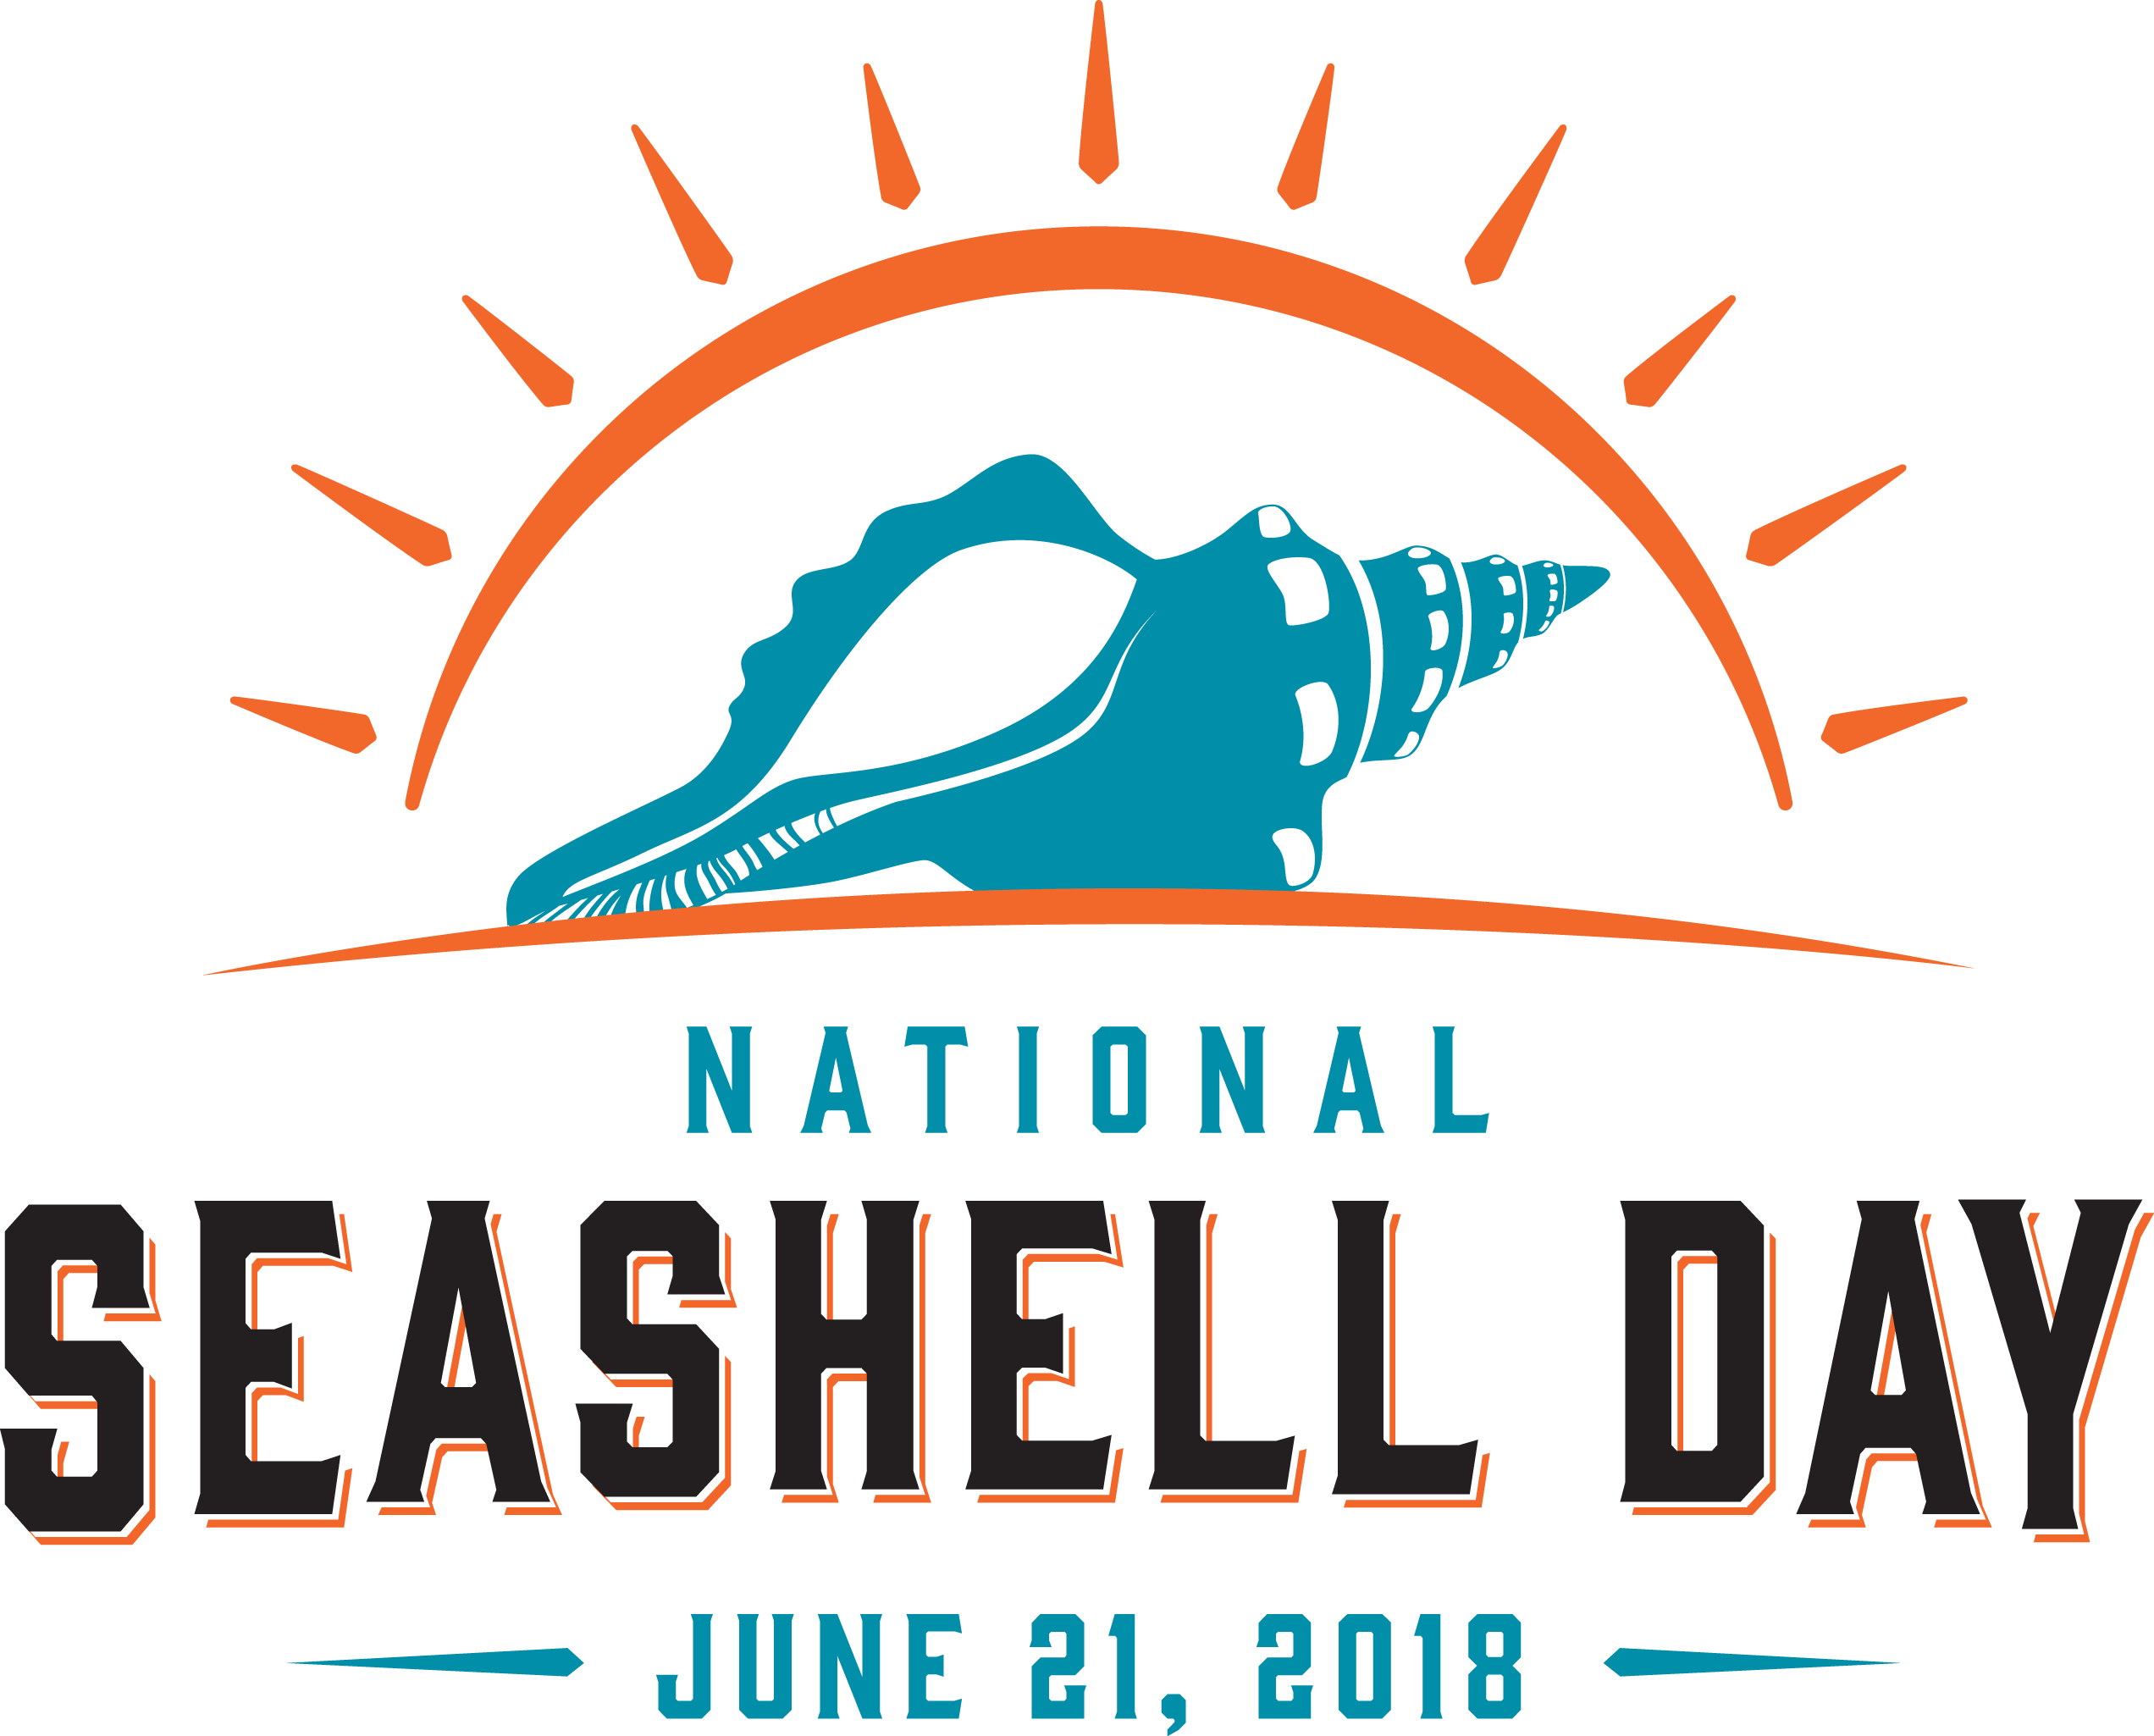 National_Seashell_Day_logo_FINAL_2018 (1)